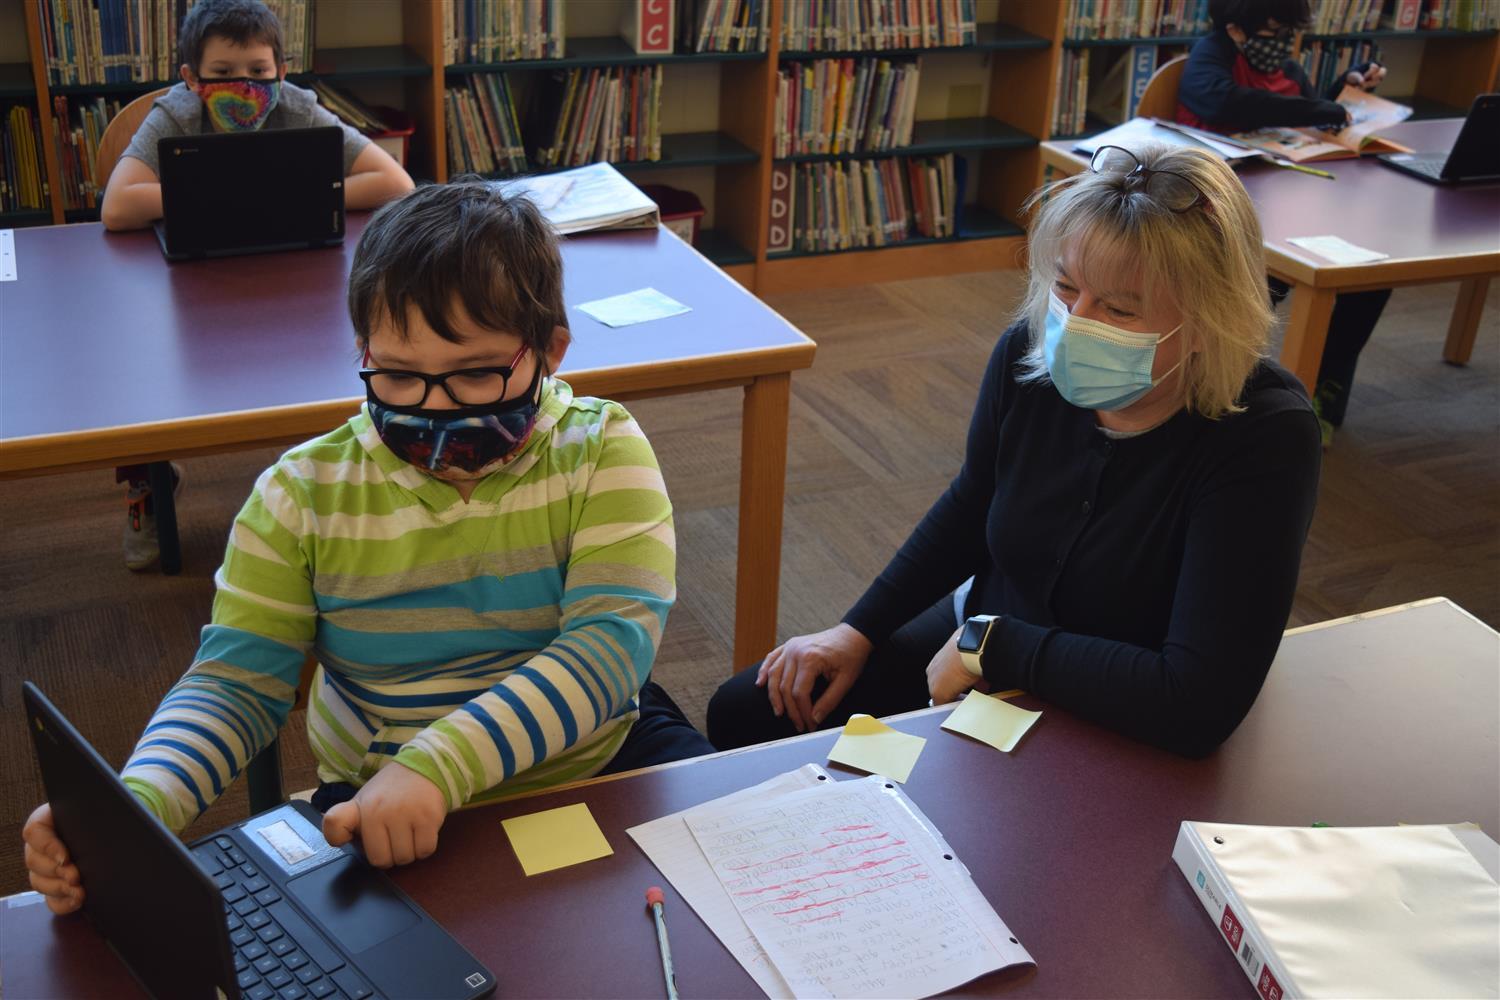 Librarian helping students